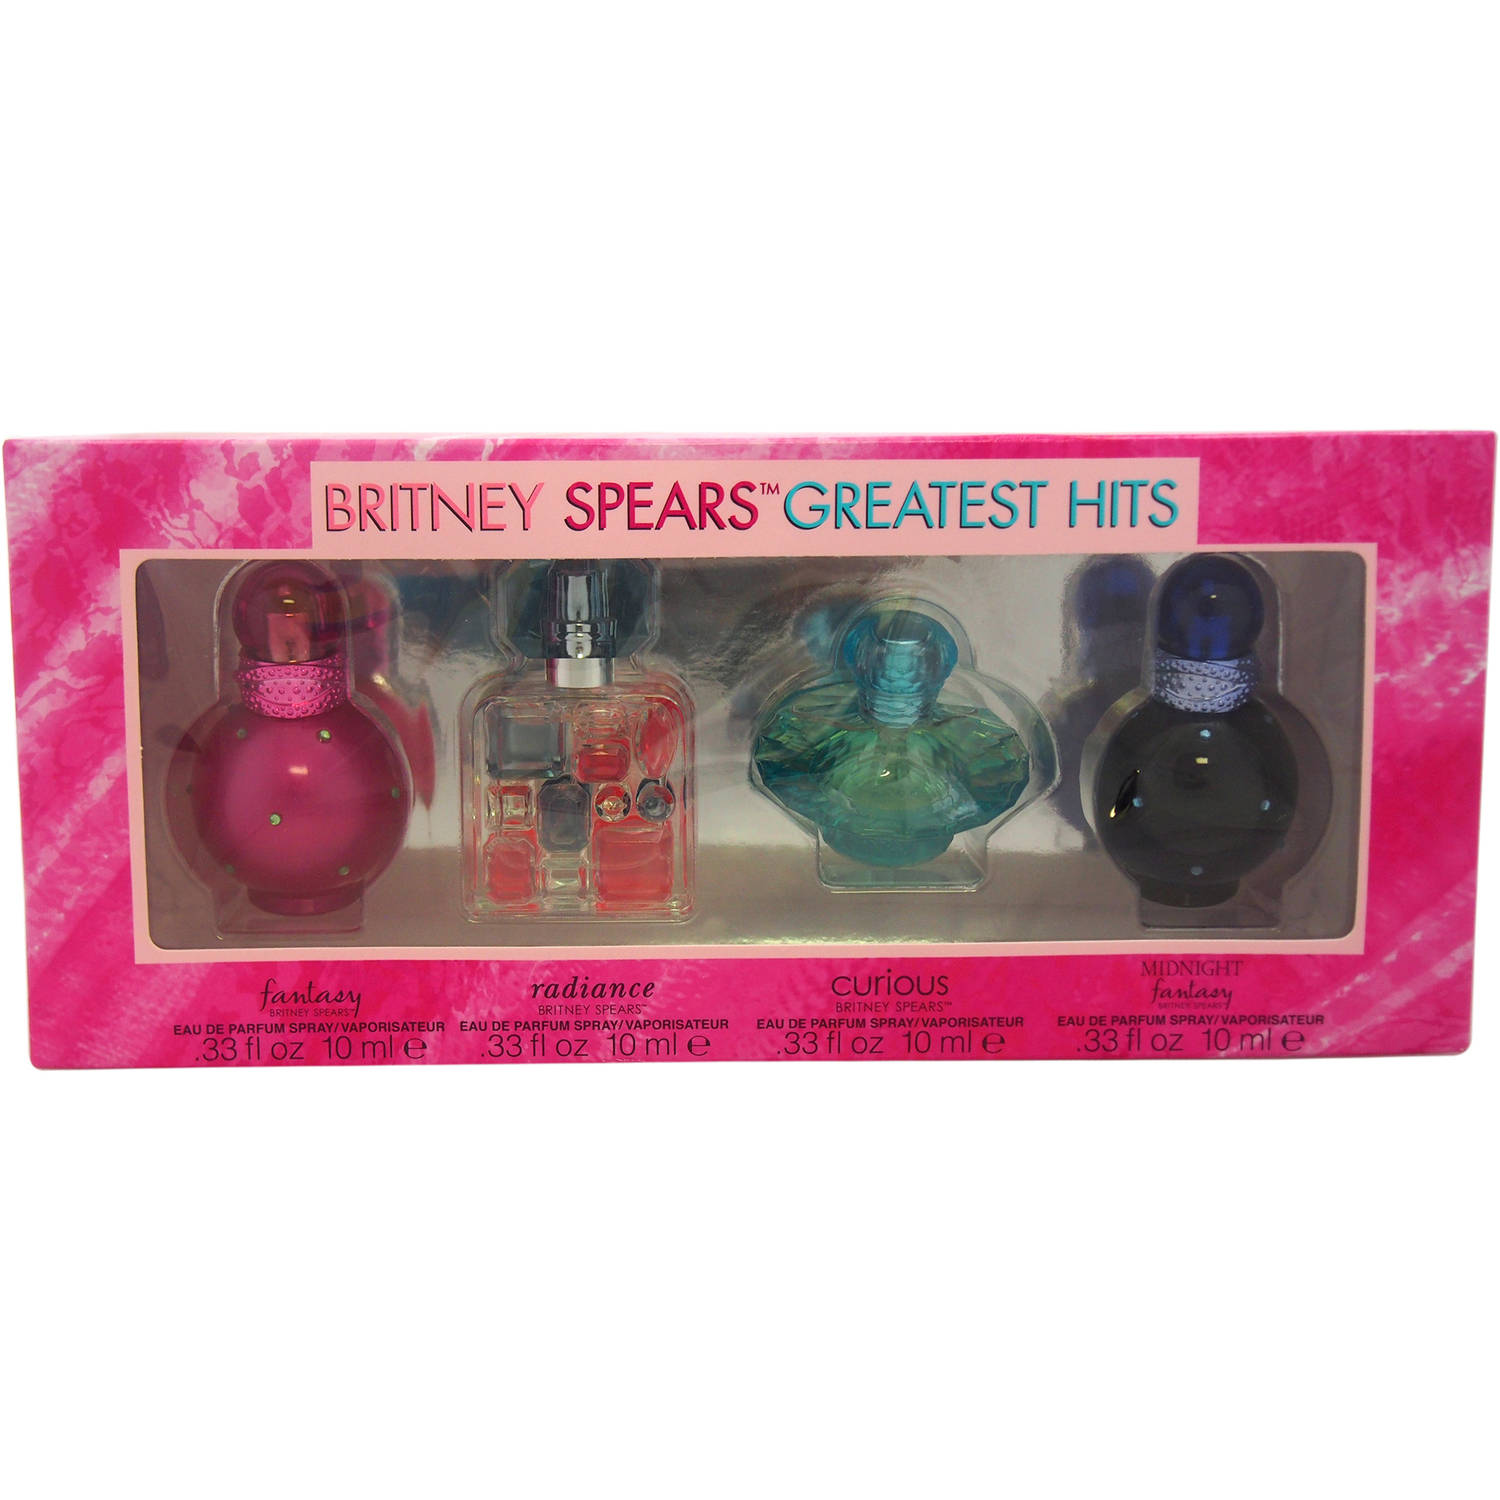 Britney Spears Greatest Hits by Britney Spears for Women Mini Gift Set, 4 pc